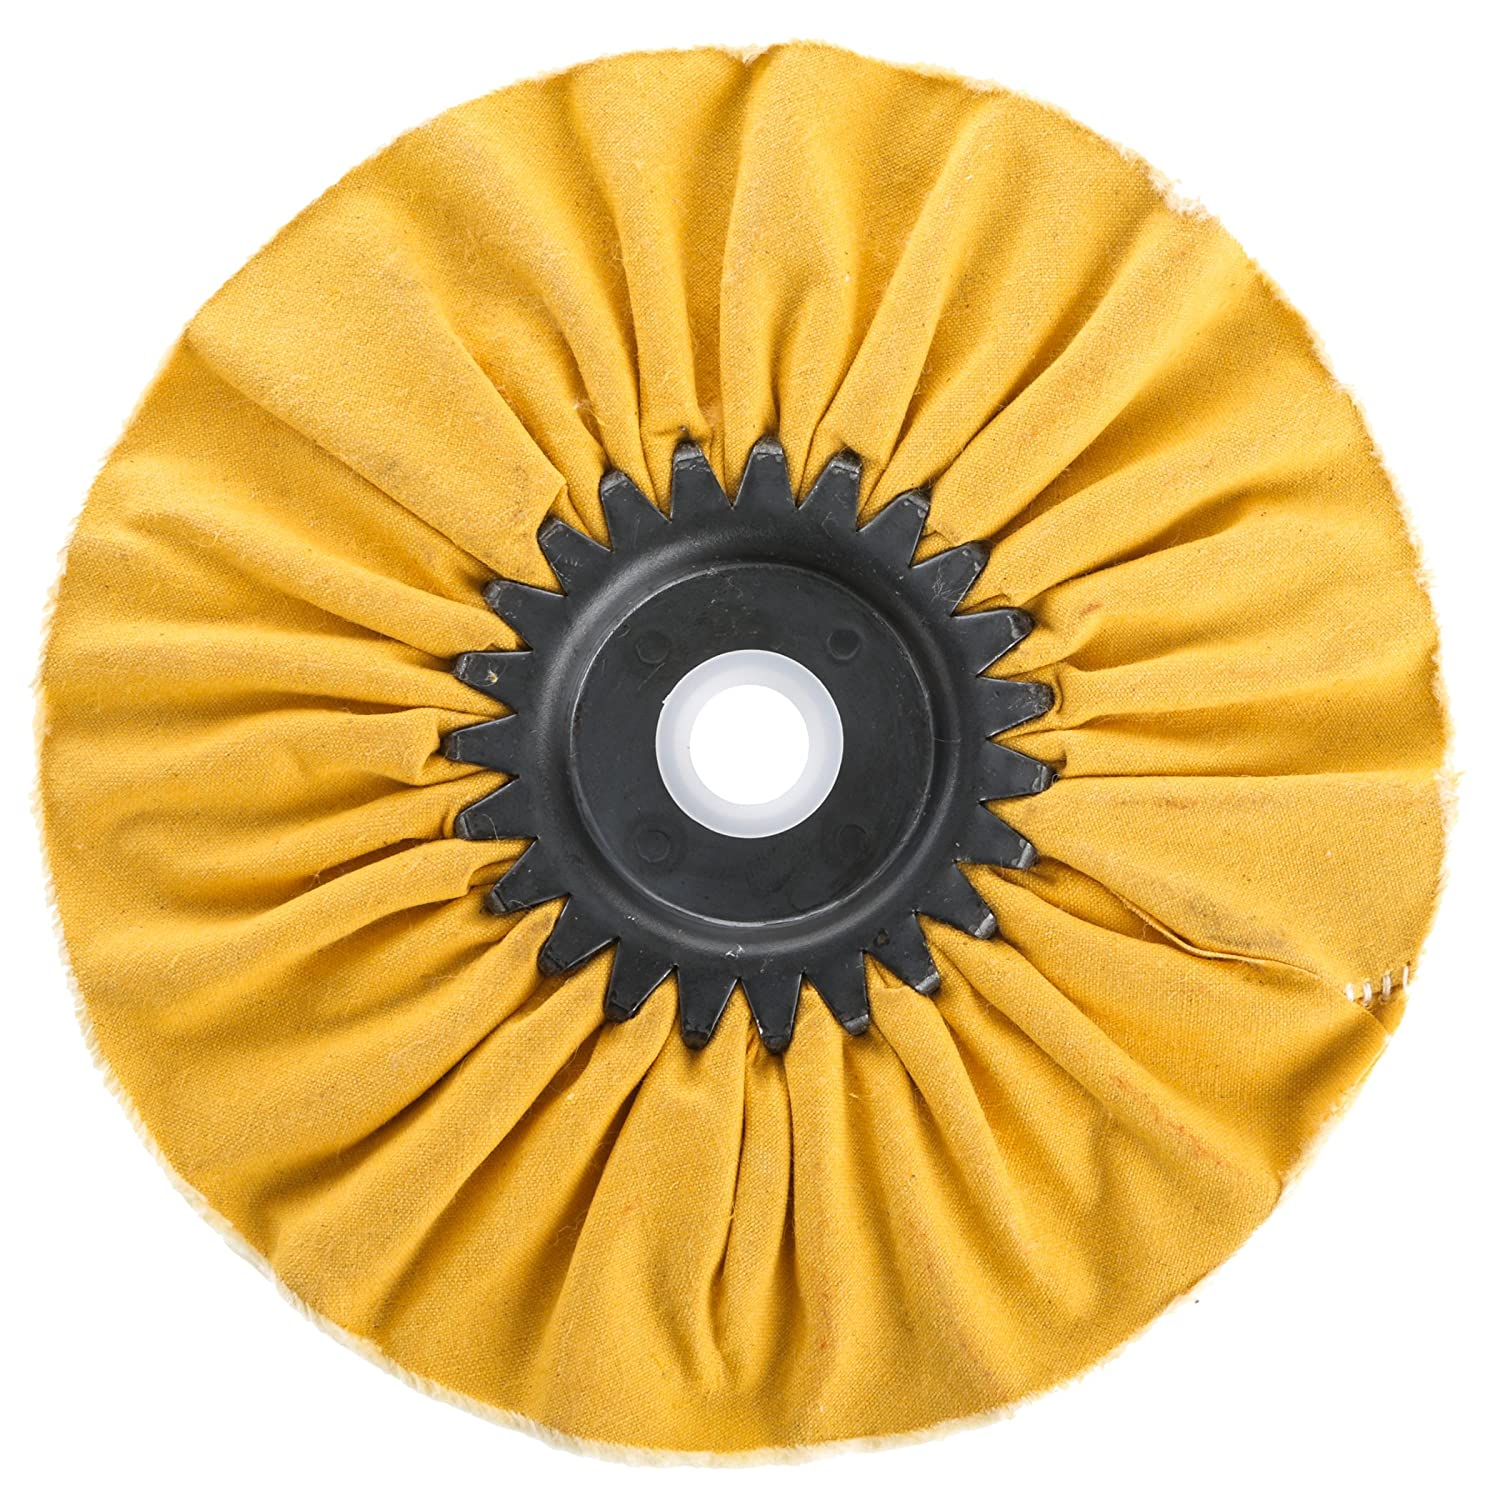 Woodstock D3193 Bias Hard Buffing Wheel Yellow 6-Inch by 5//8-Inch Hole